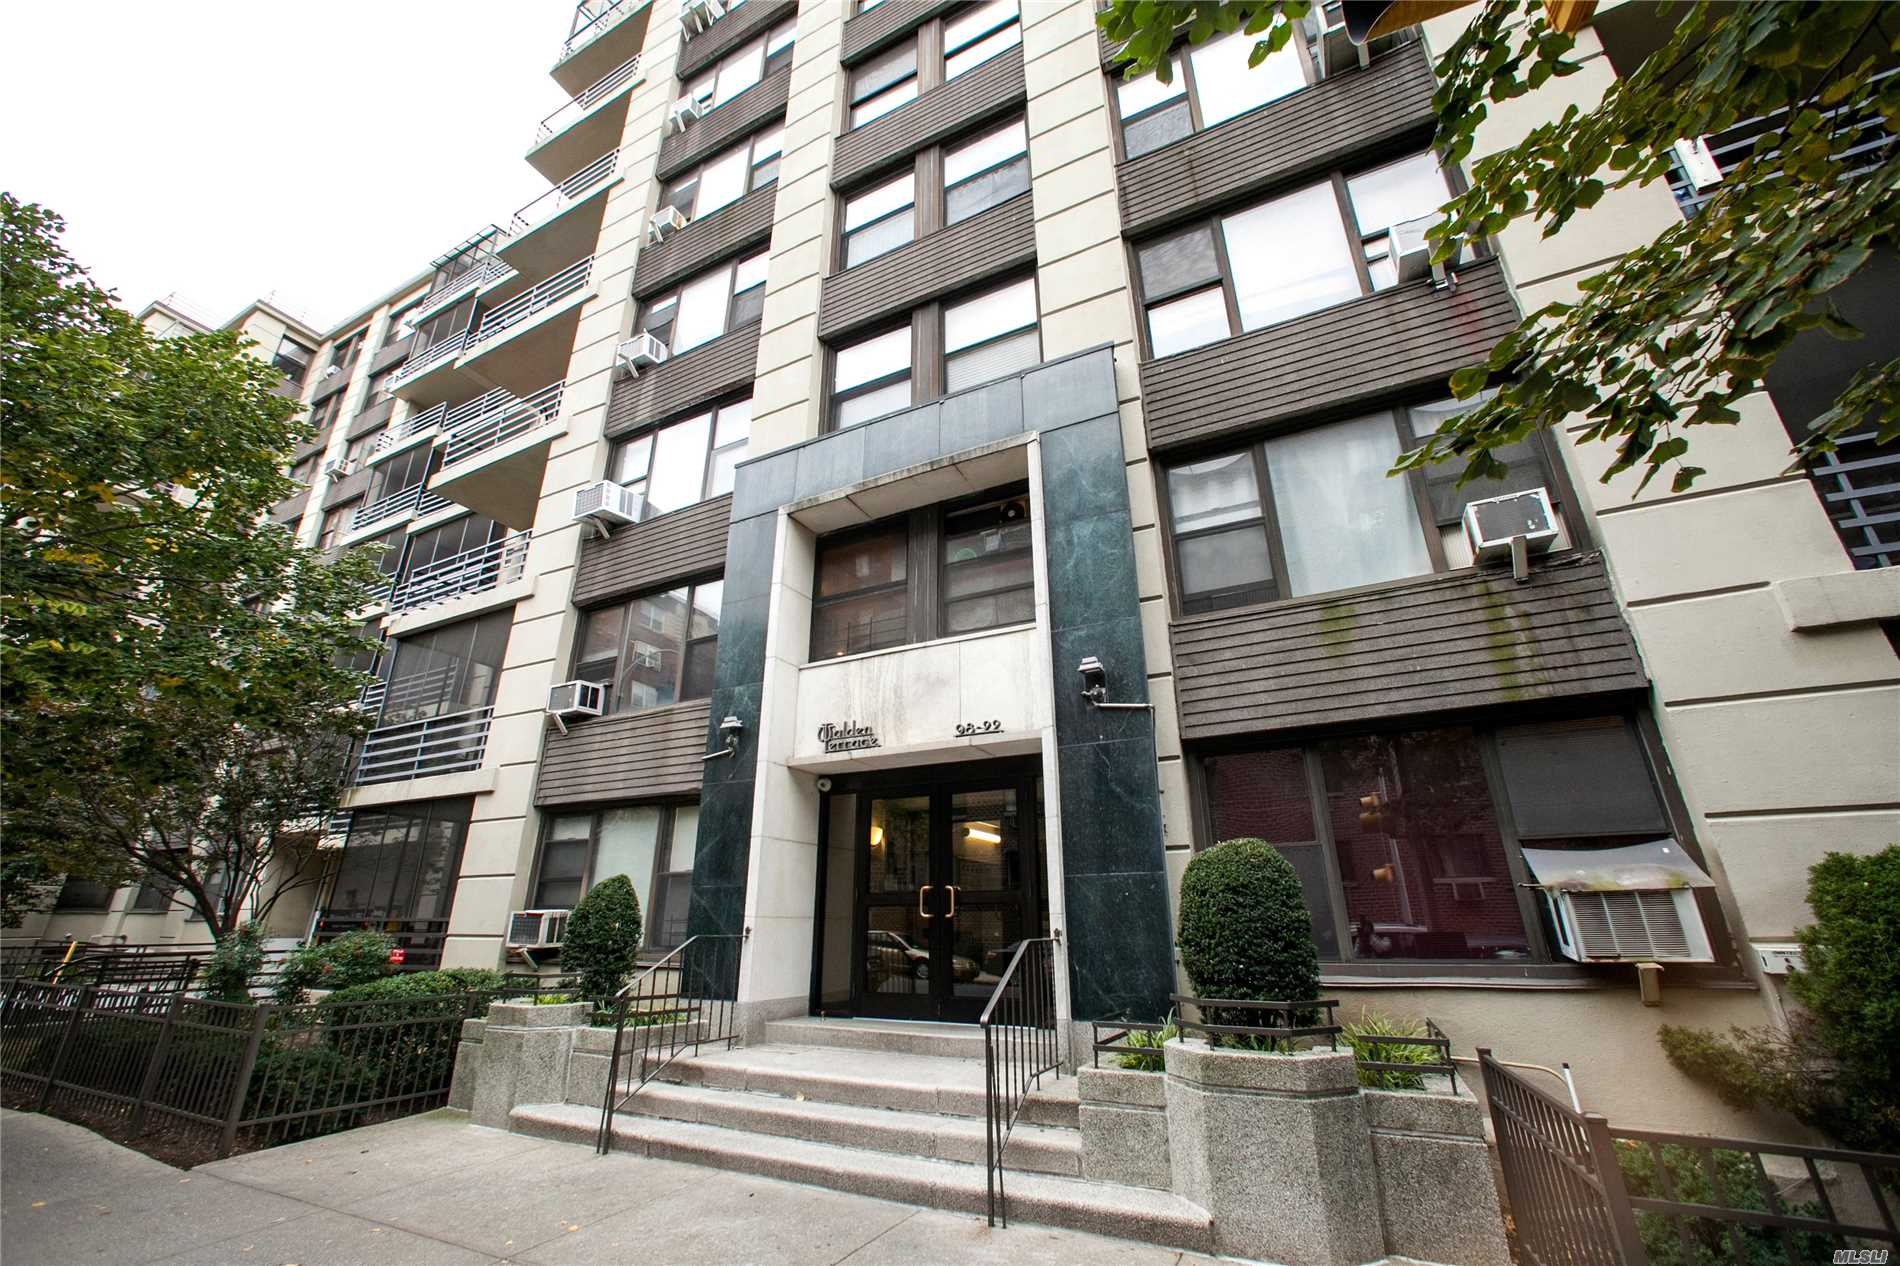 Spacious Apartment For Sale In Walden Terrace Complex. Unit Features An Excellent Layout, Large Windows , Sunken Living Room, Spacious Bedroom, and Ample Closet Space. All Utilities Are Included. Steps From Subway, Short Walk To Costco And All Shopping Area. Valet Parking Garage Available In The Building.